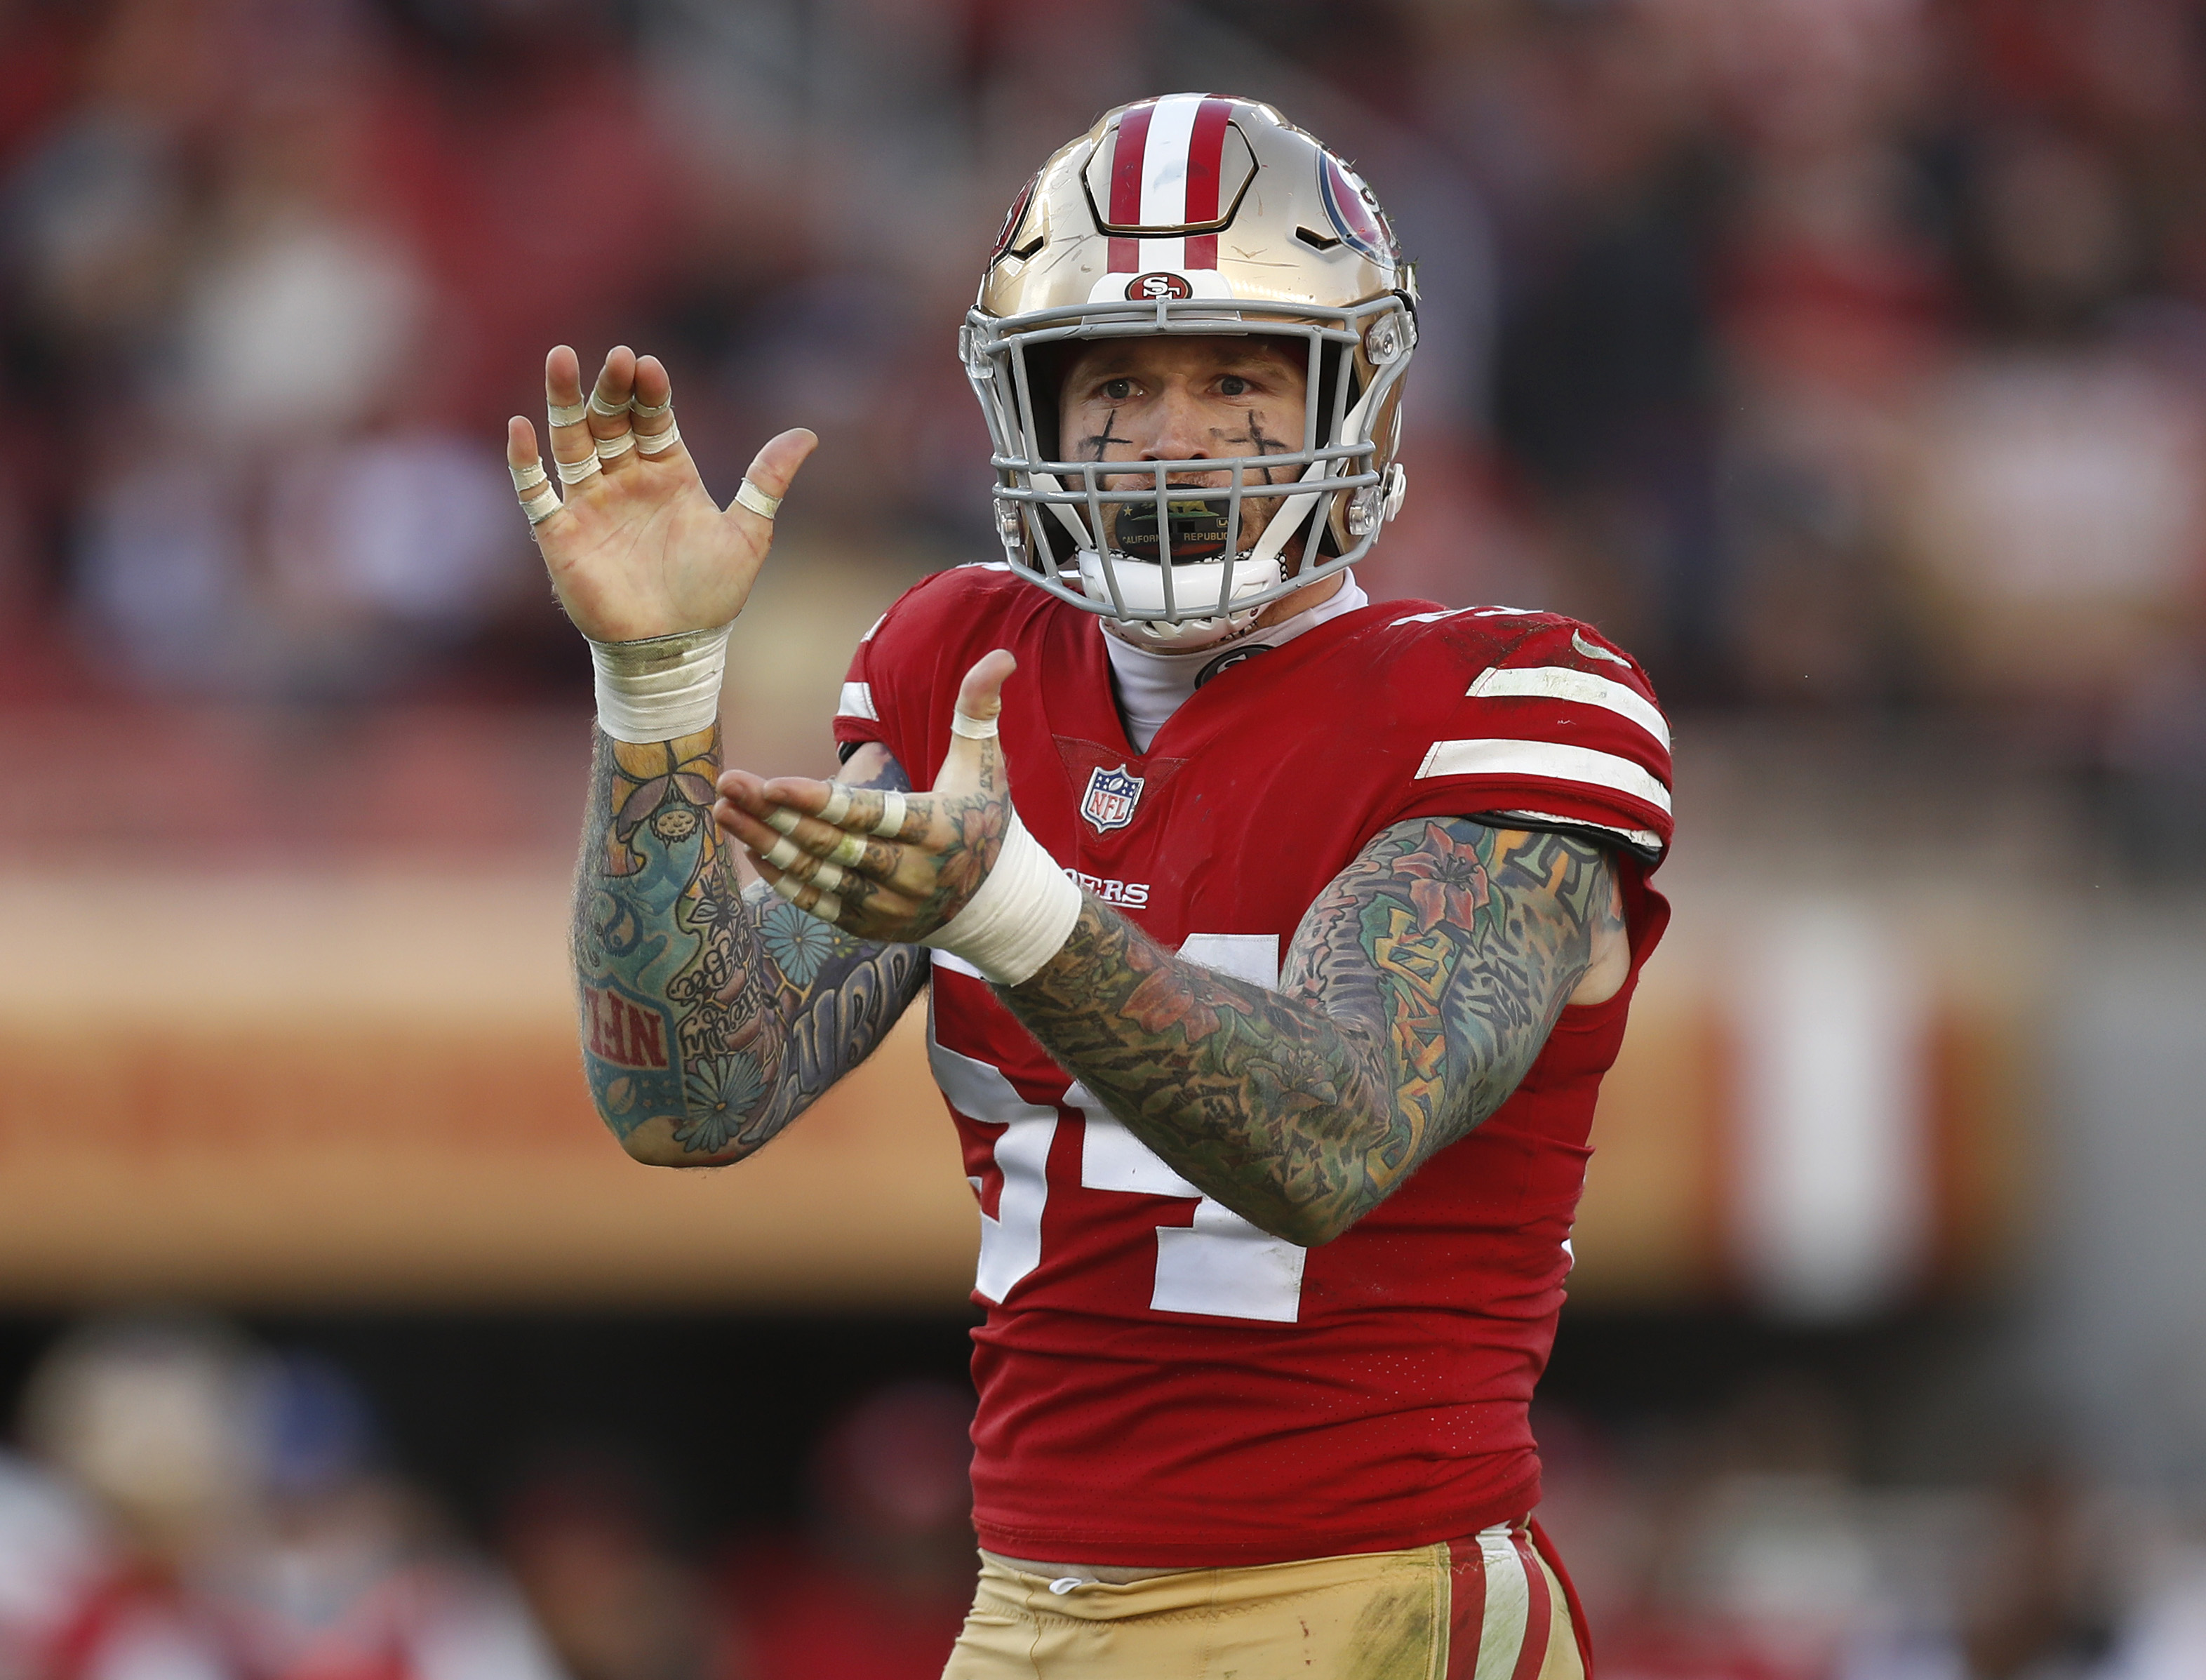 San Francisco 49ers versus Chicago Bears